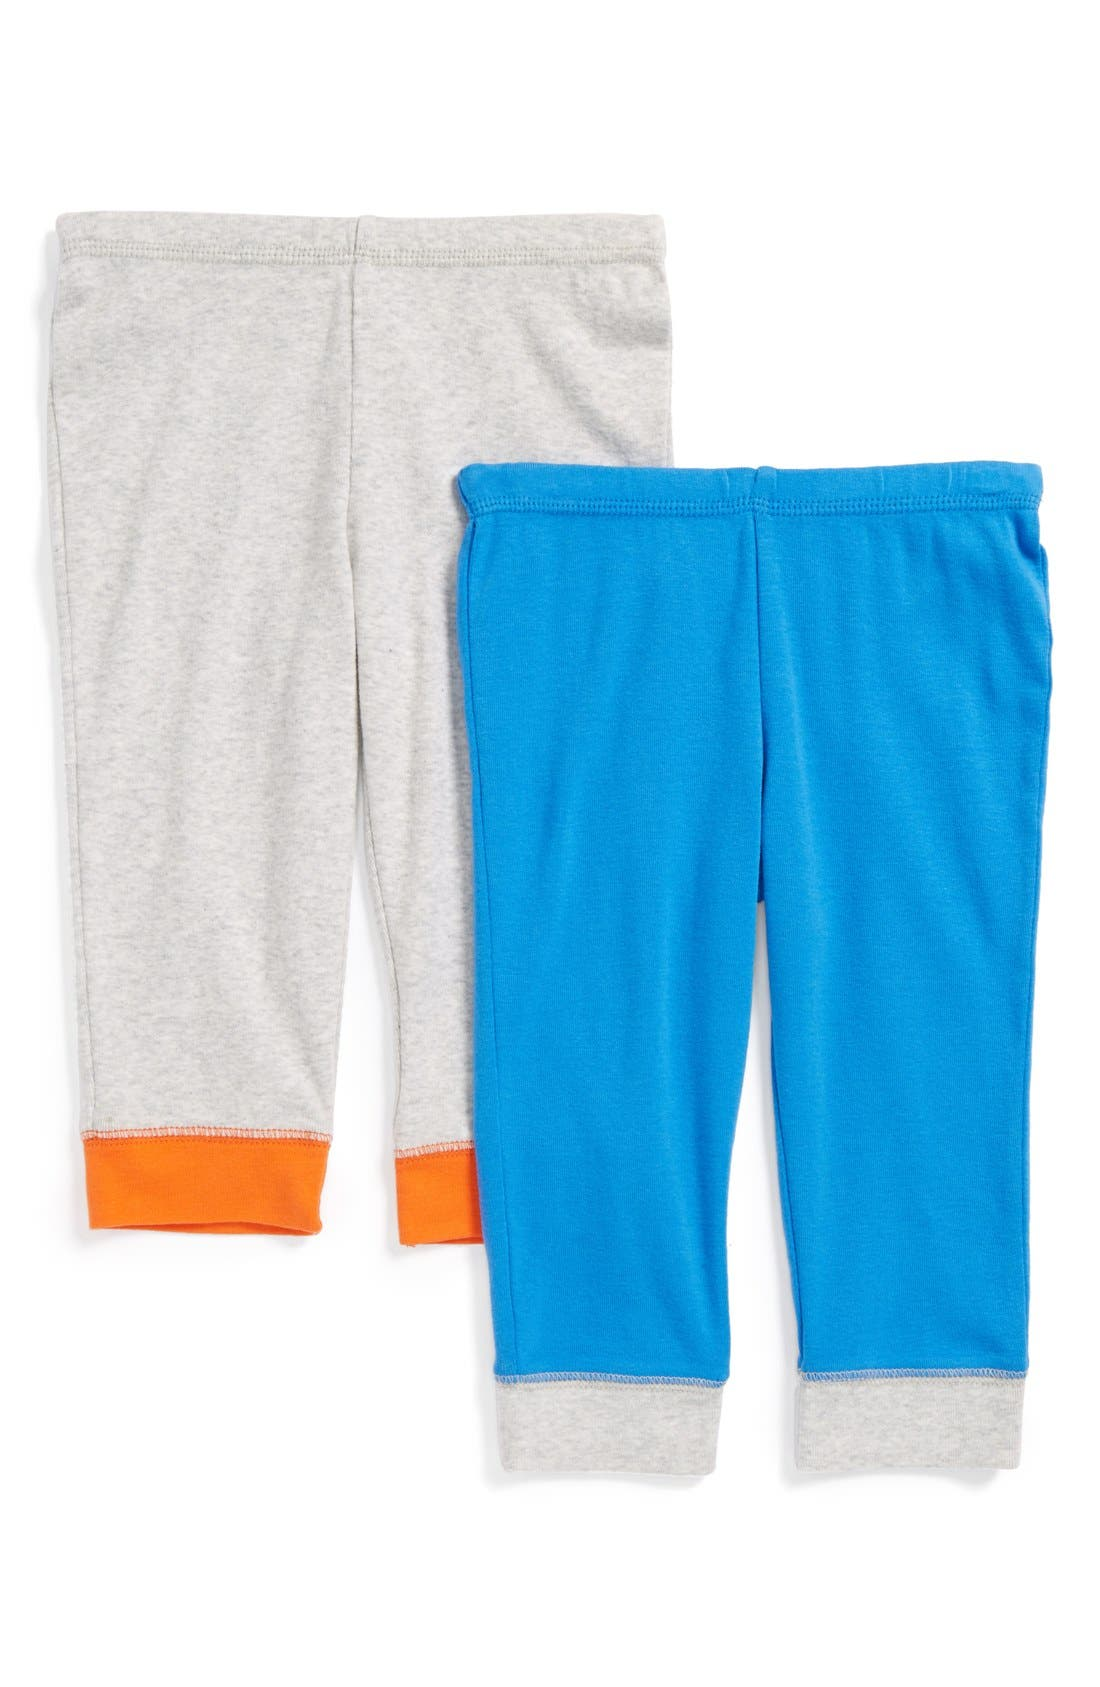 Alternate Image 1 Selected - Stem Baby Colorblock Organic Cotton Pants (Set of 2) (Baby Boys) (Nordstrom Exclusive)